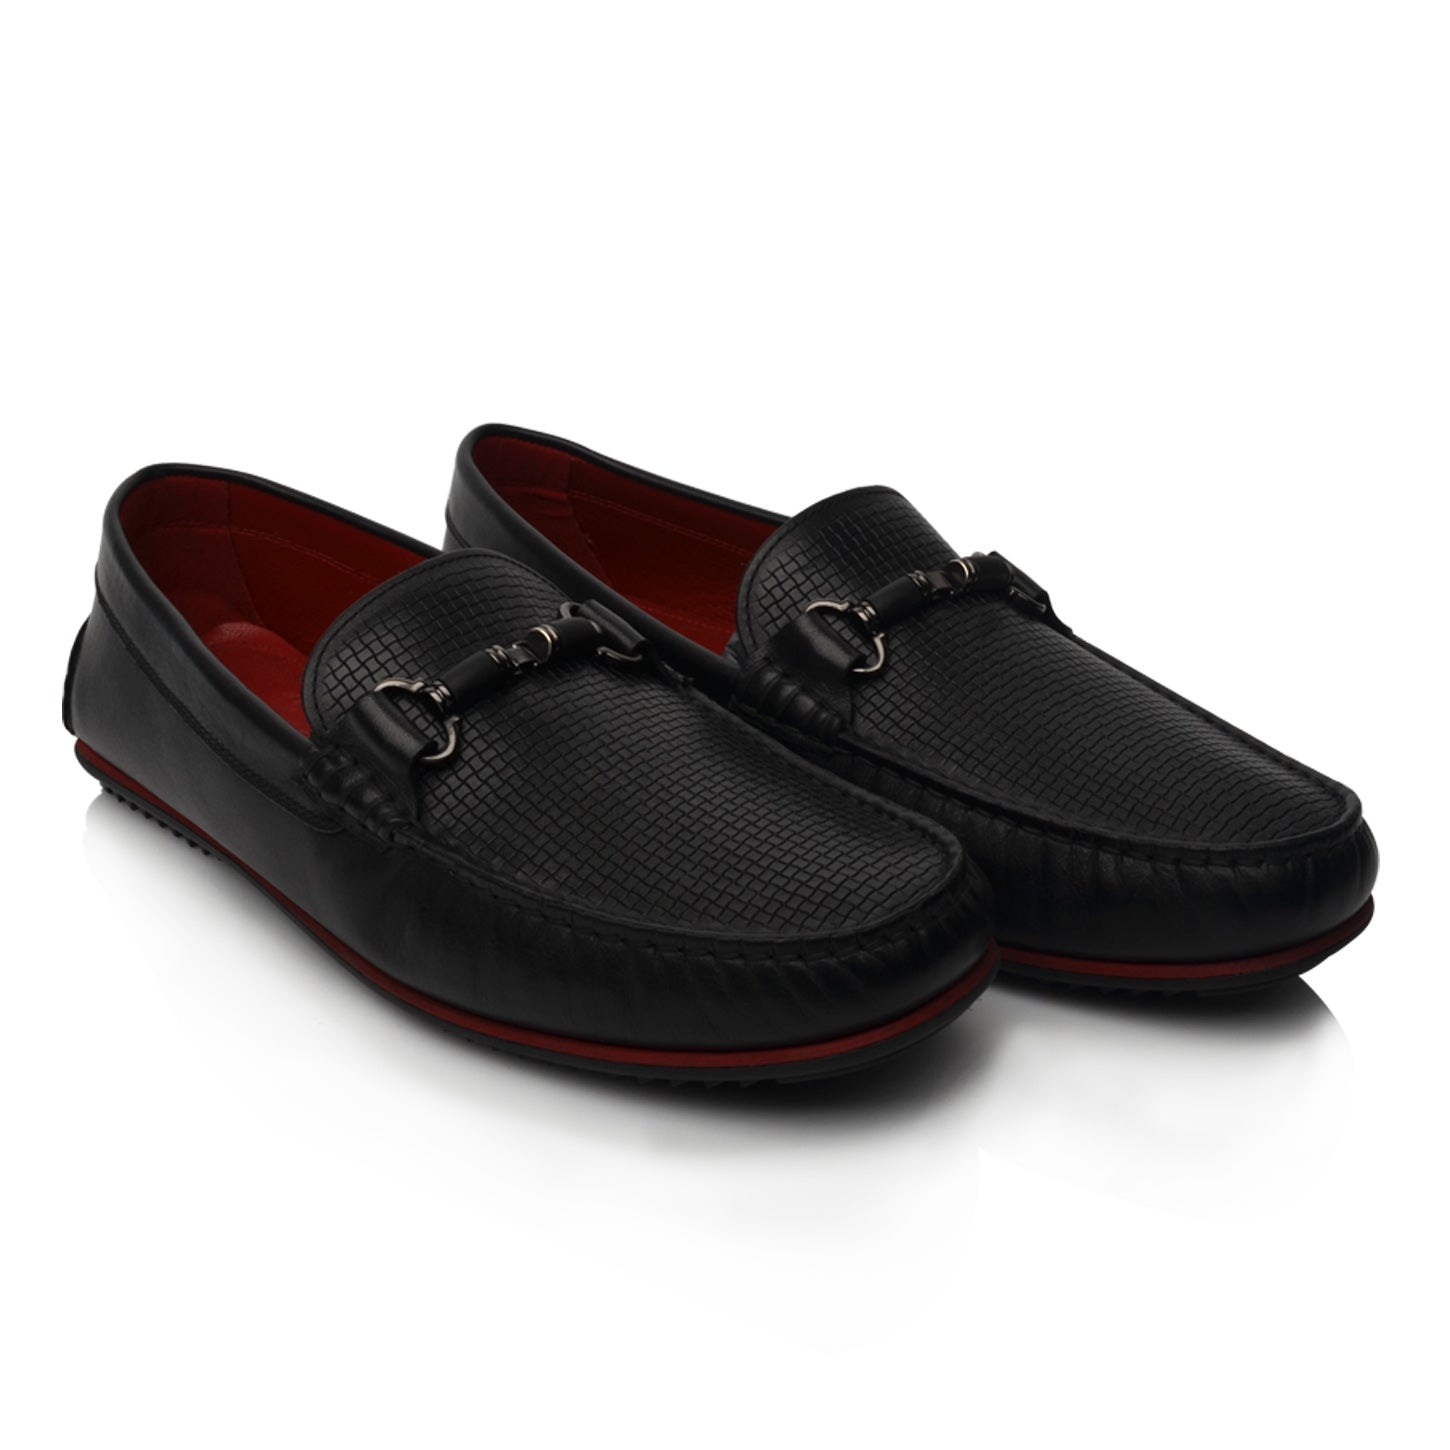 black casual loafers, OFF 72%,Buy!